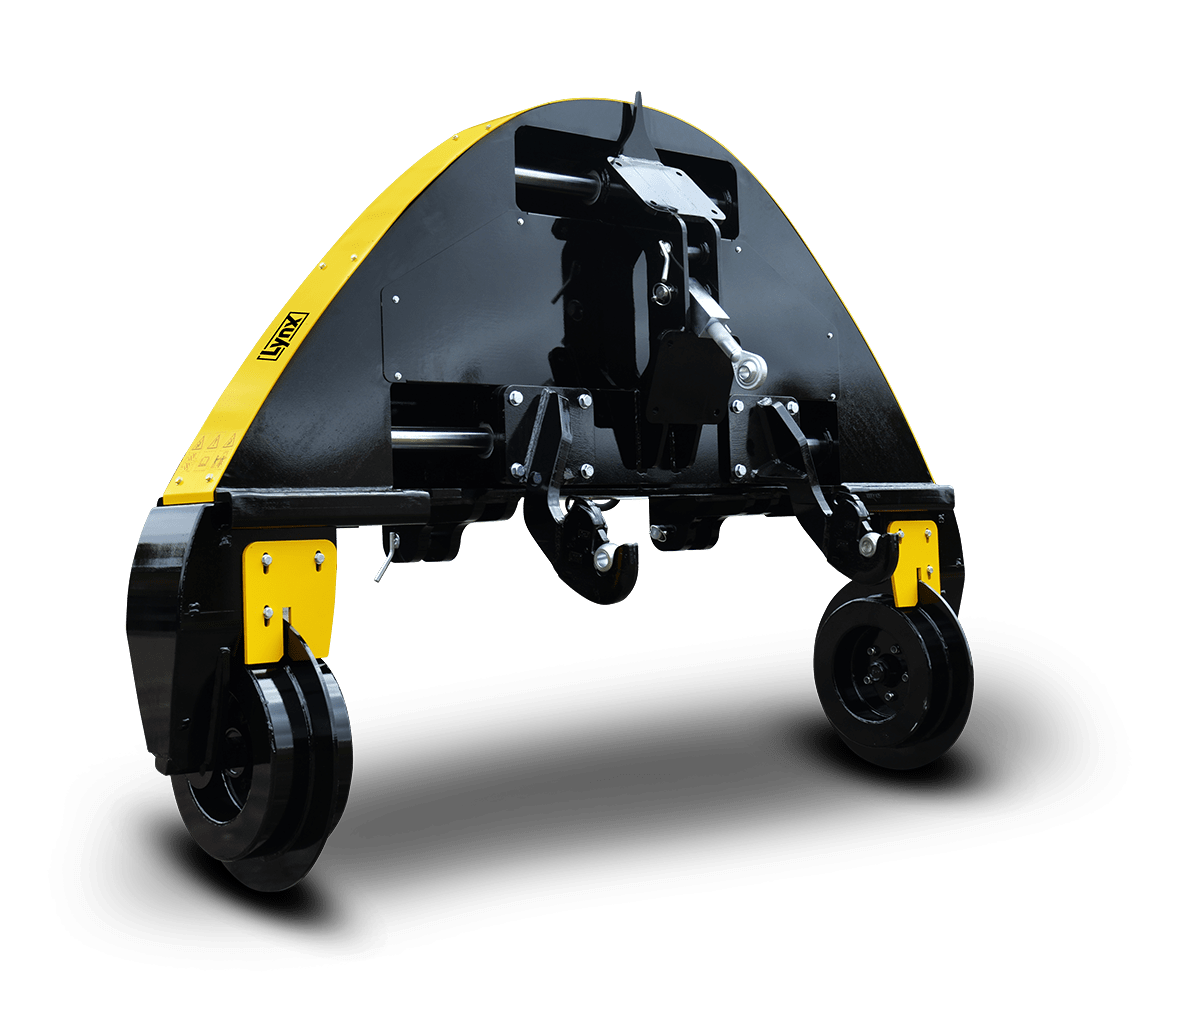 LYNX guidance interface of PHENIX manufacturer for large crop row hoes, achieving accurate self-guidance. Striking centimeter-wide in-the-row accuracy